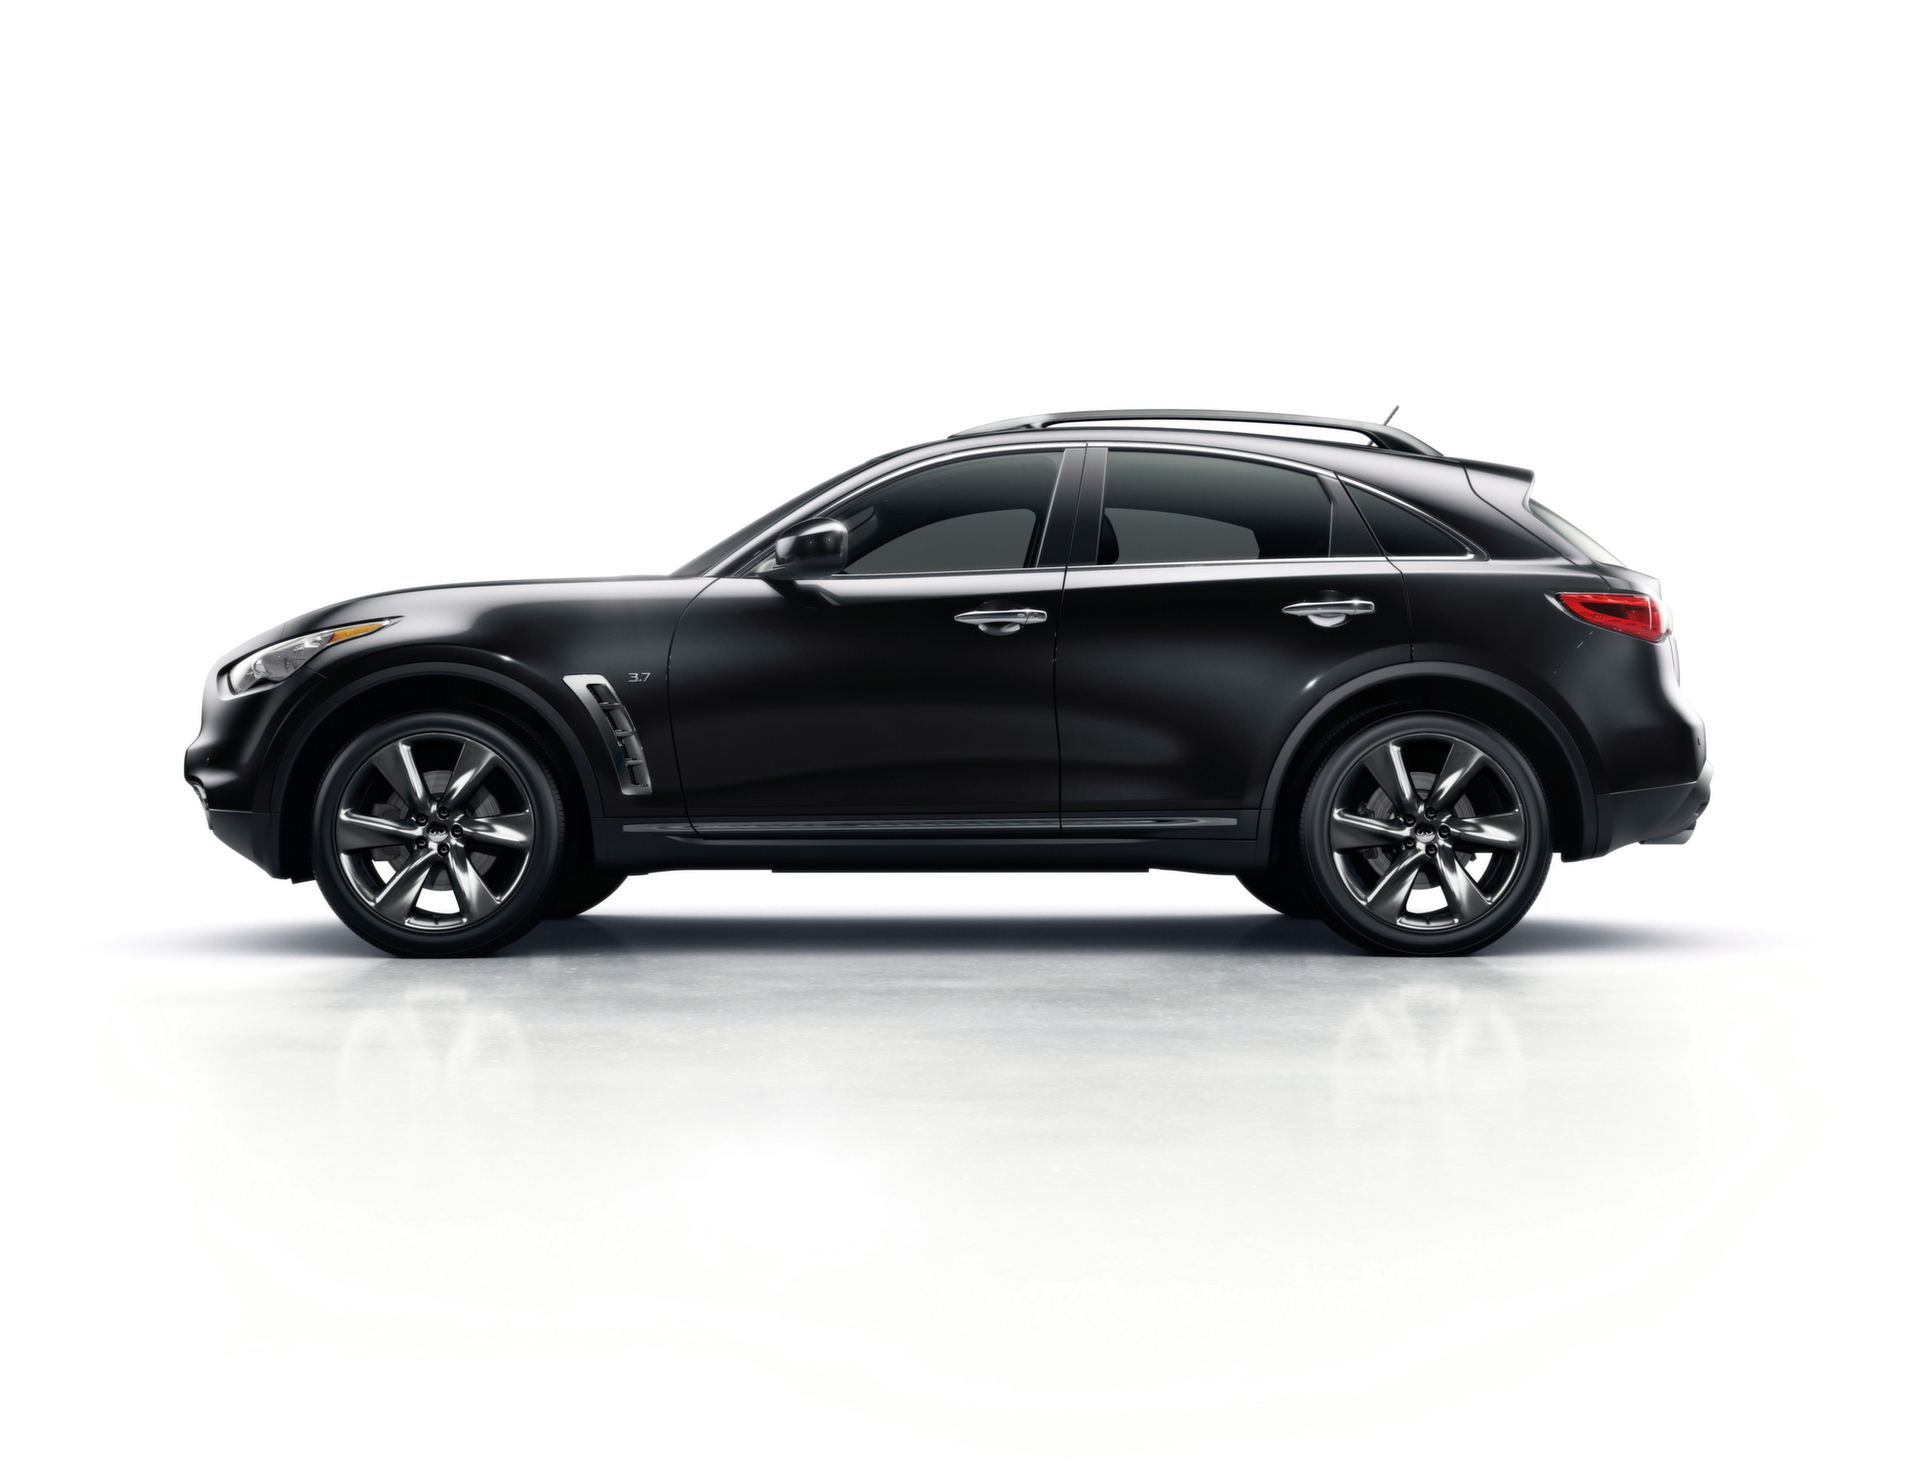 2015 infiniti qx70 review ratings specs prices and photos the car connection. Black Bedroom Furniture Sets. Home Design Ideas